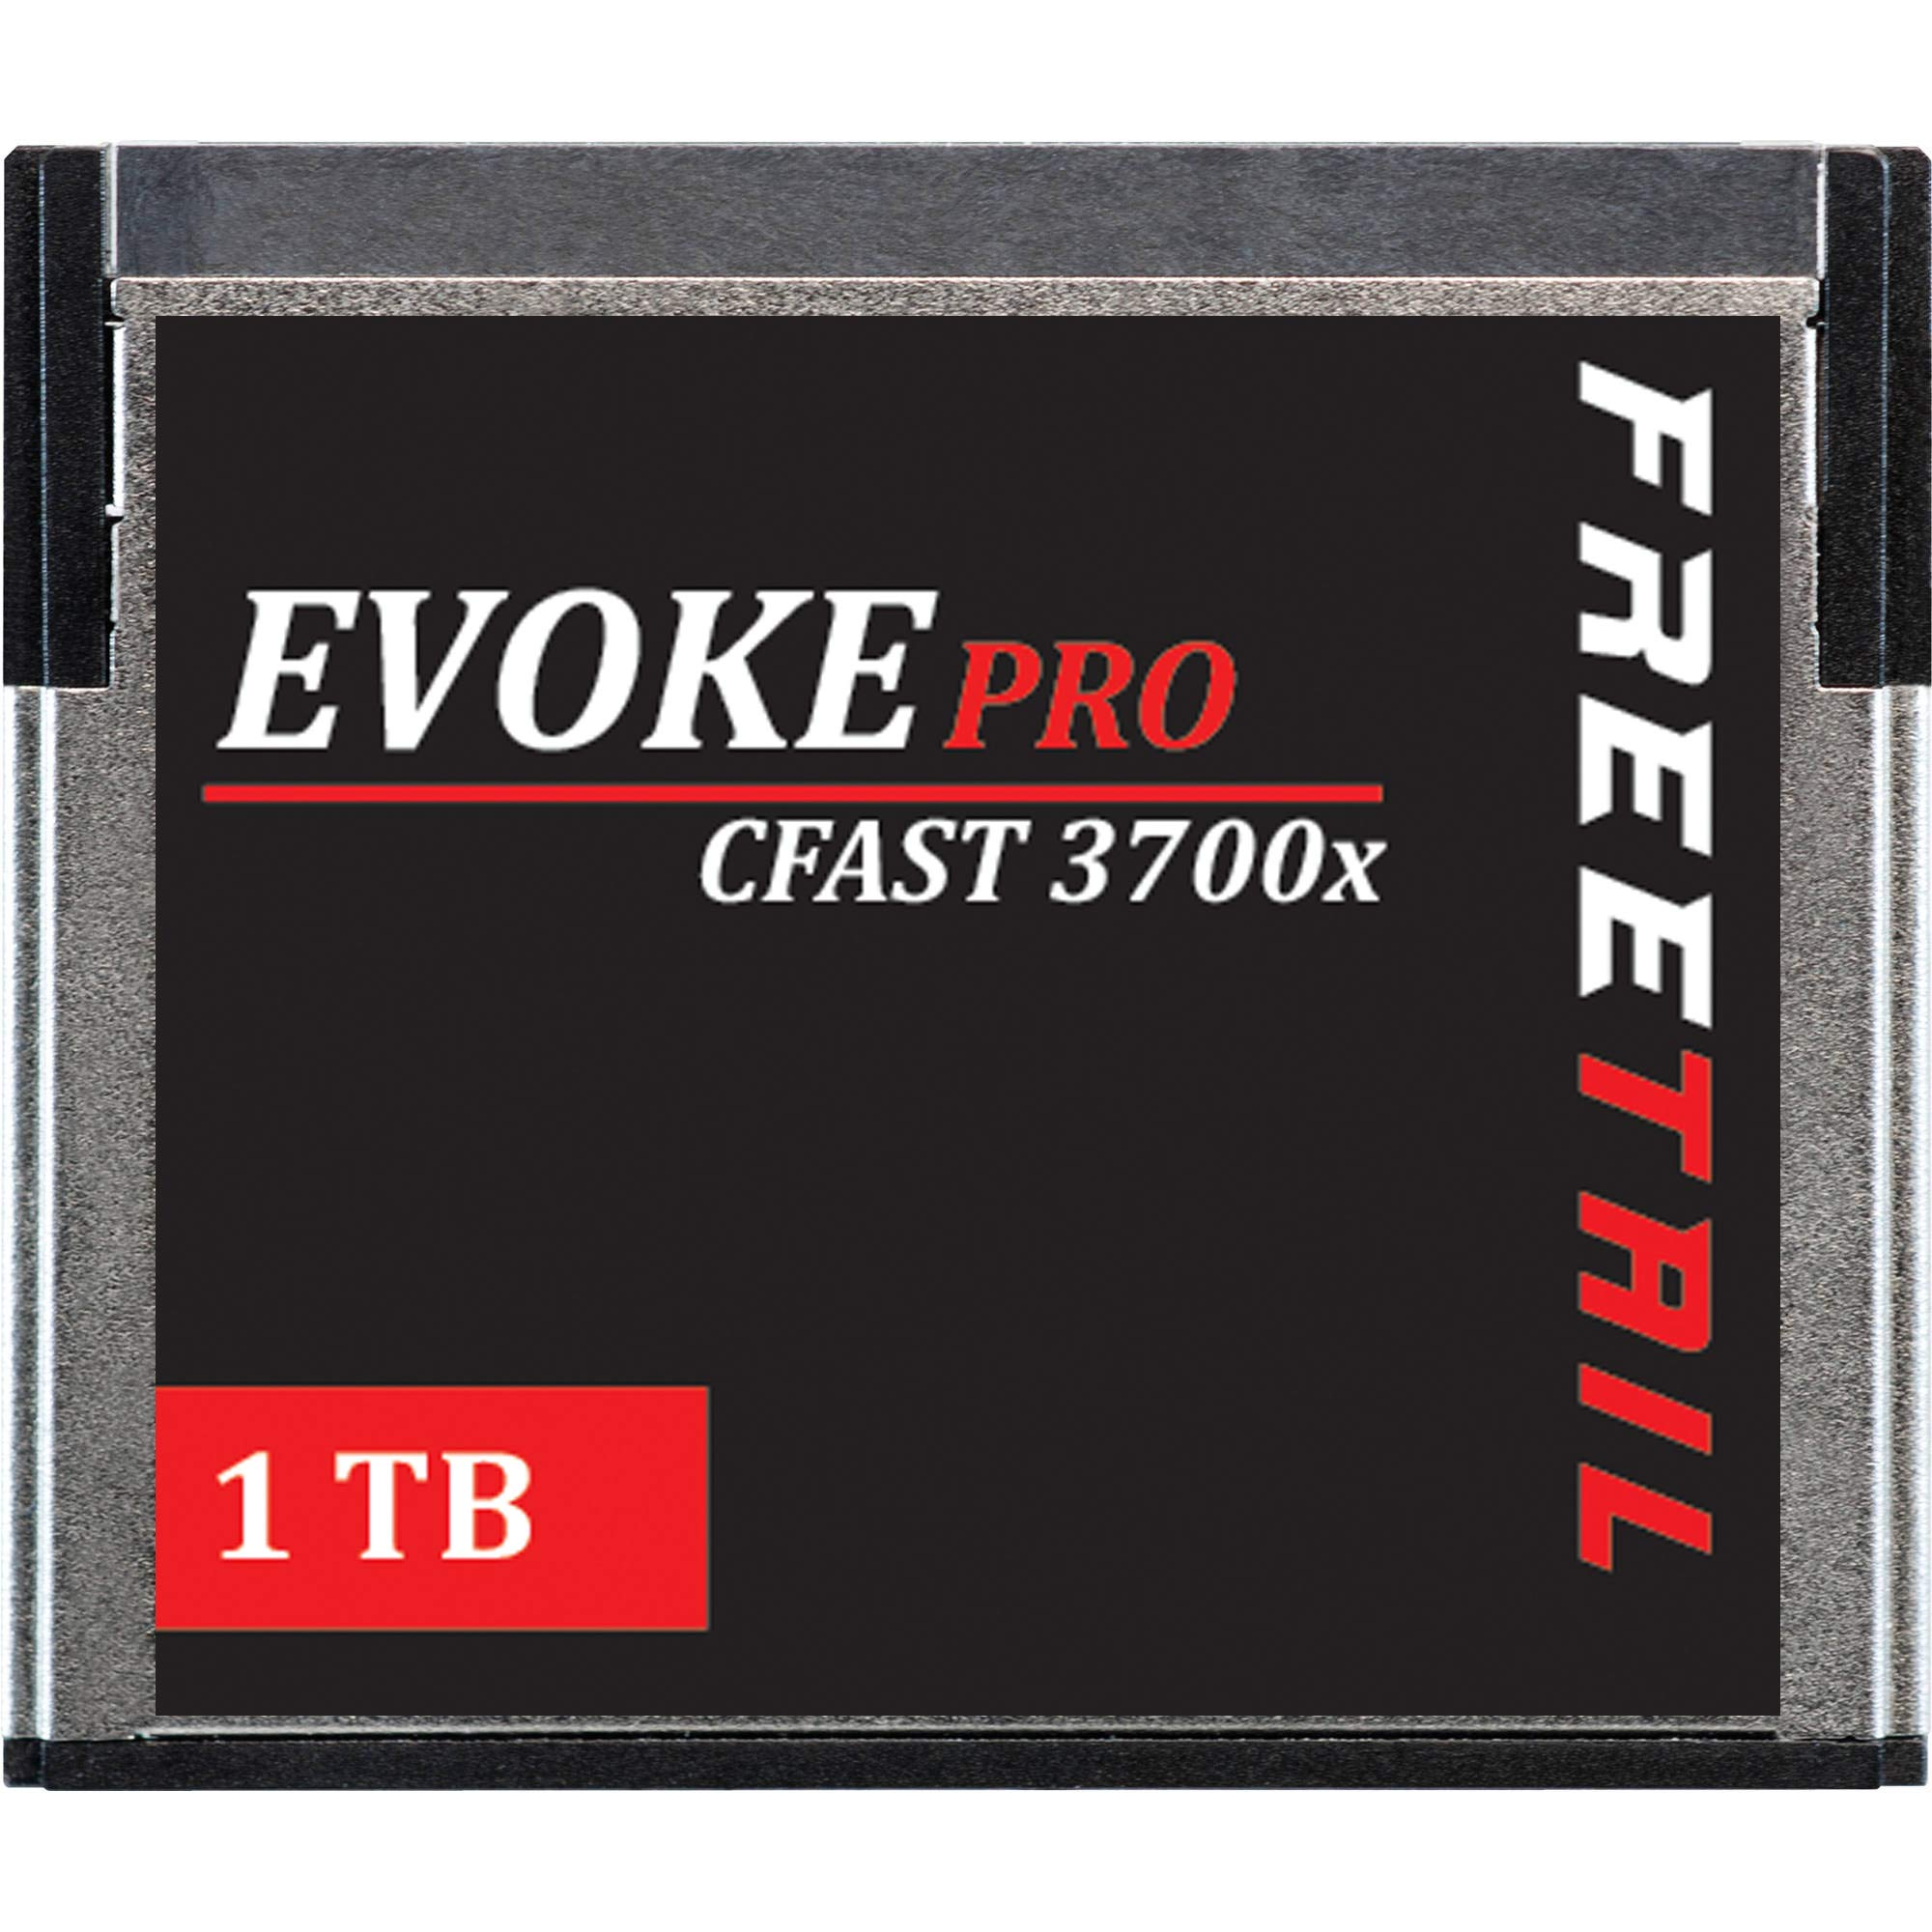 FreeTail Evoke Pro 1TB Cfast Card Speeds up to 560MB/s, VPG 130 Made for Canon, BlackMagic Design, Hasselblad, and Phantom Devices (FTCF001A37) by FreeTail